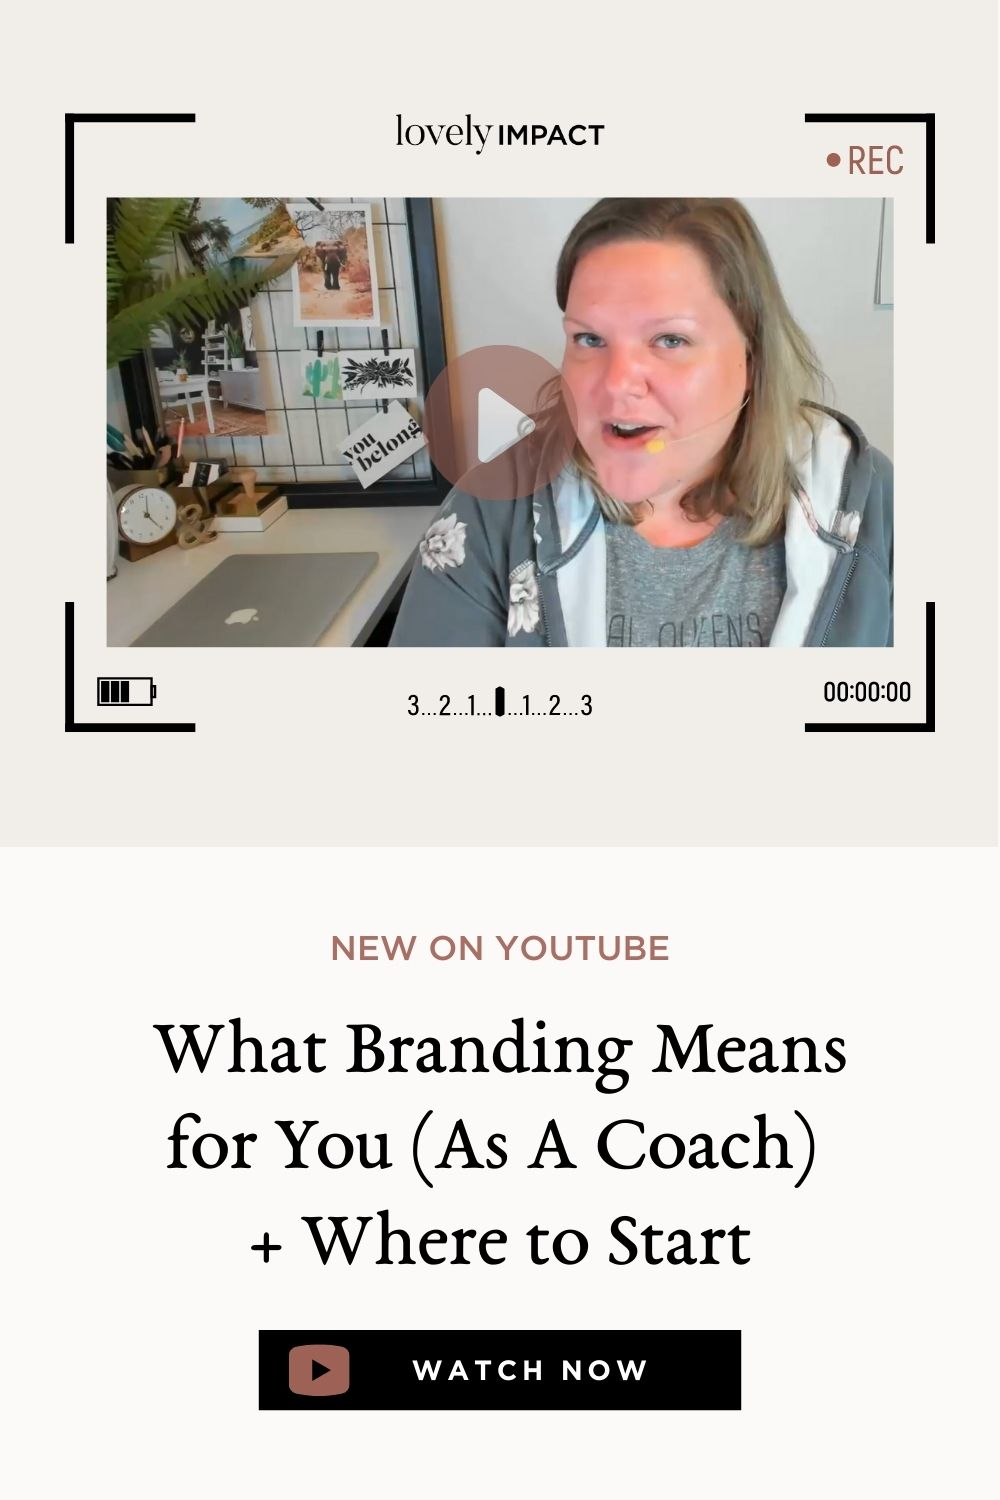 What Branding Means for You (As A Coach) + Where to Start